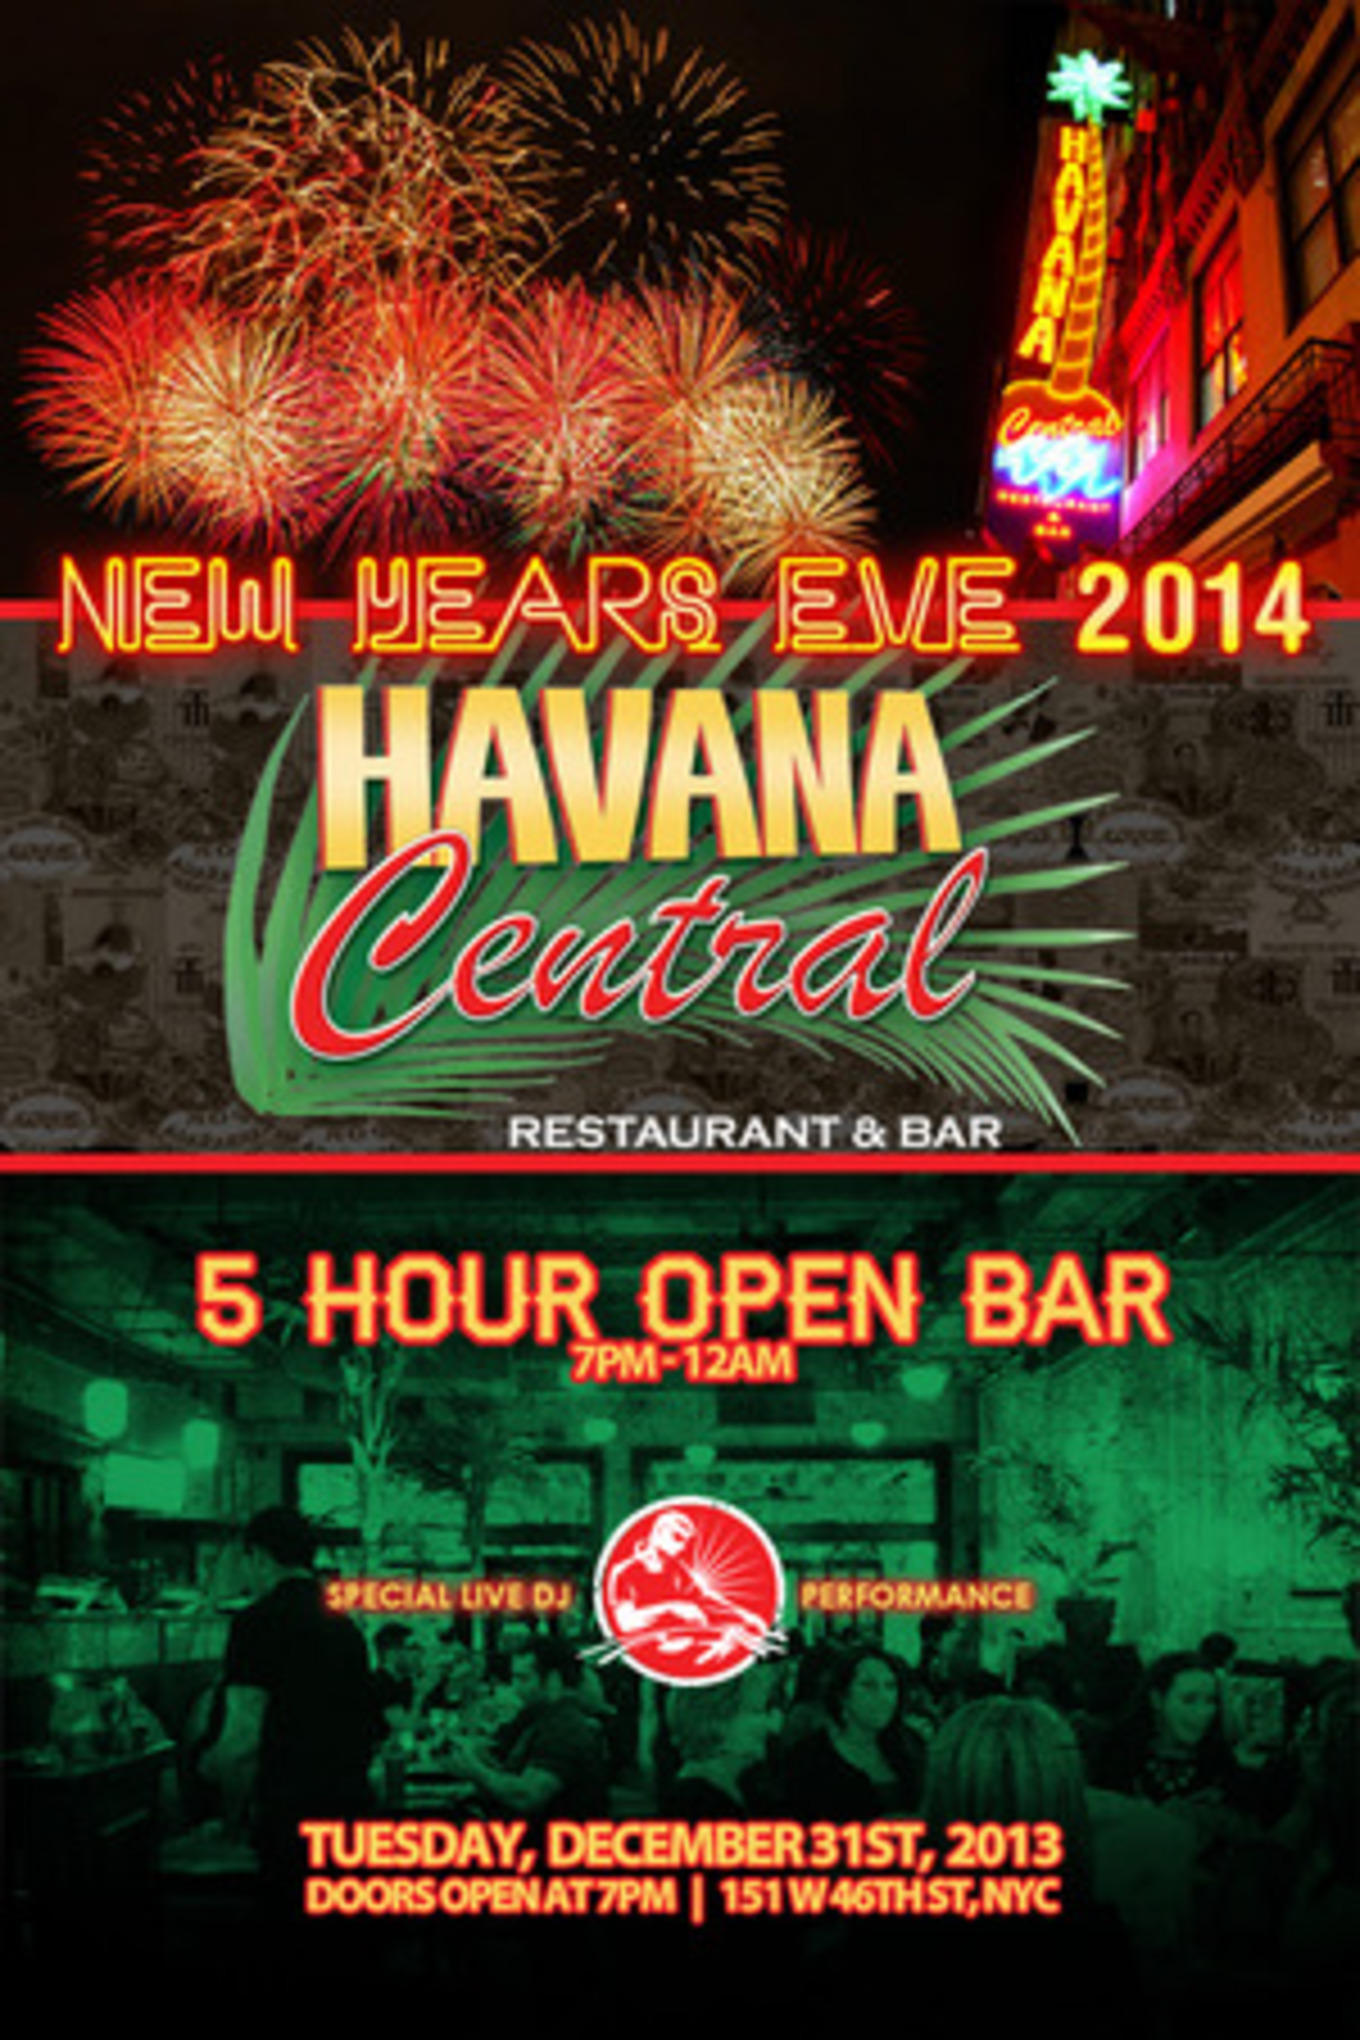 6670f5b6fd49 Havana Central New Years Eve 2014 - Havana Central